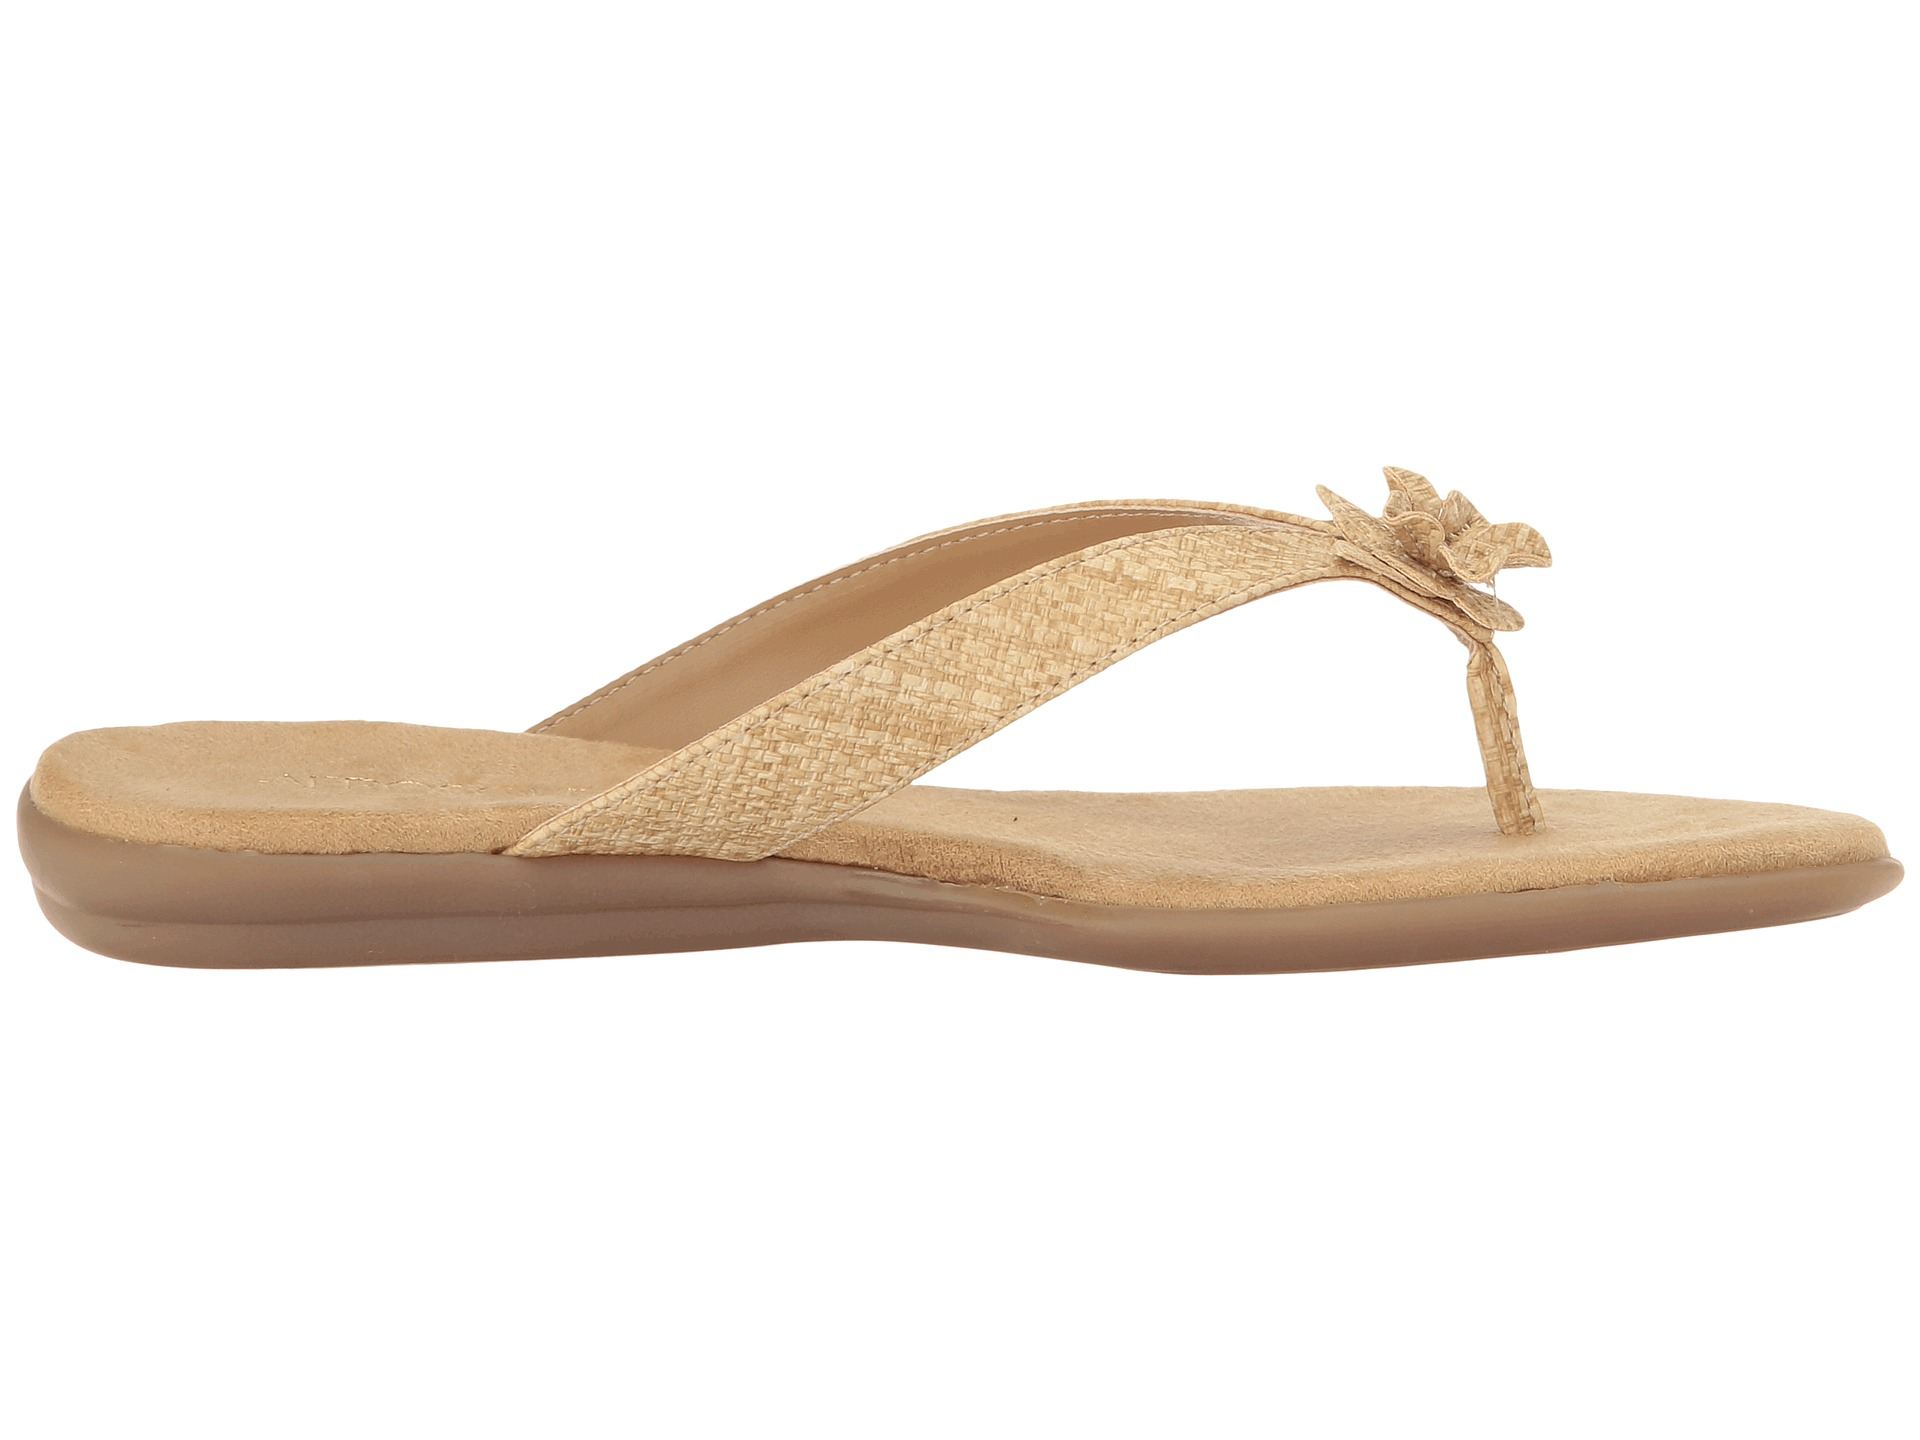 A2 by Aerosoles Branchlet at 6pm.com